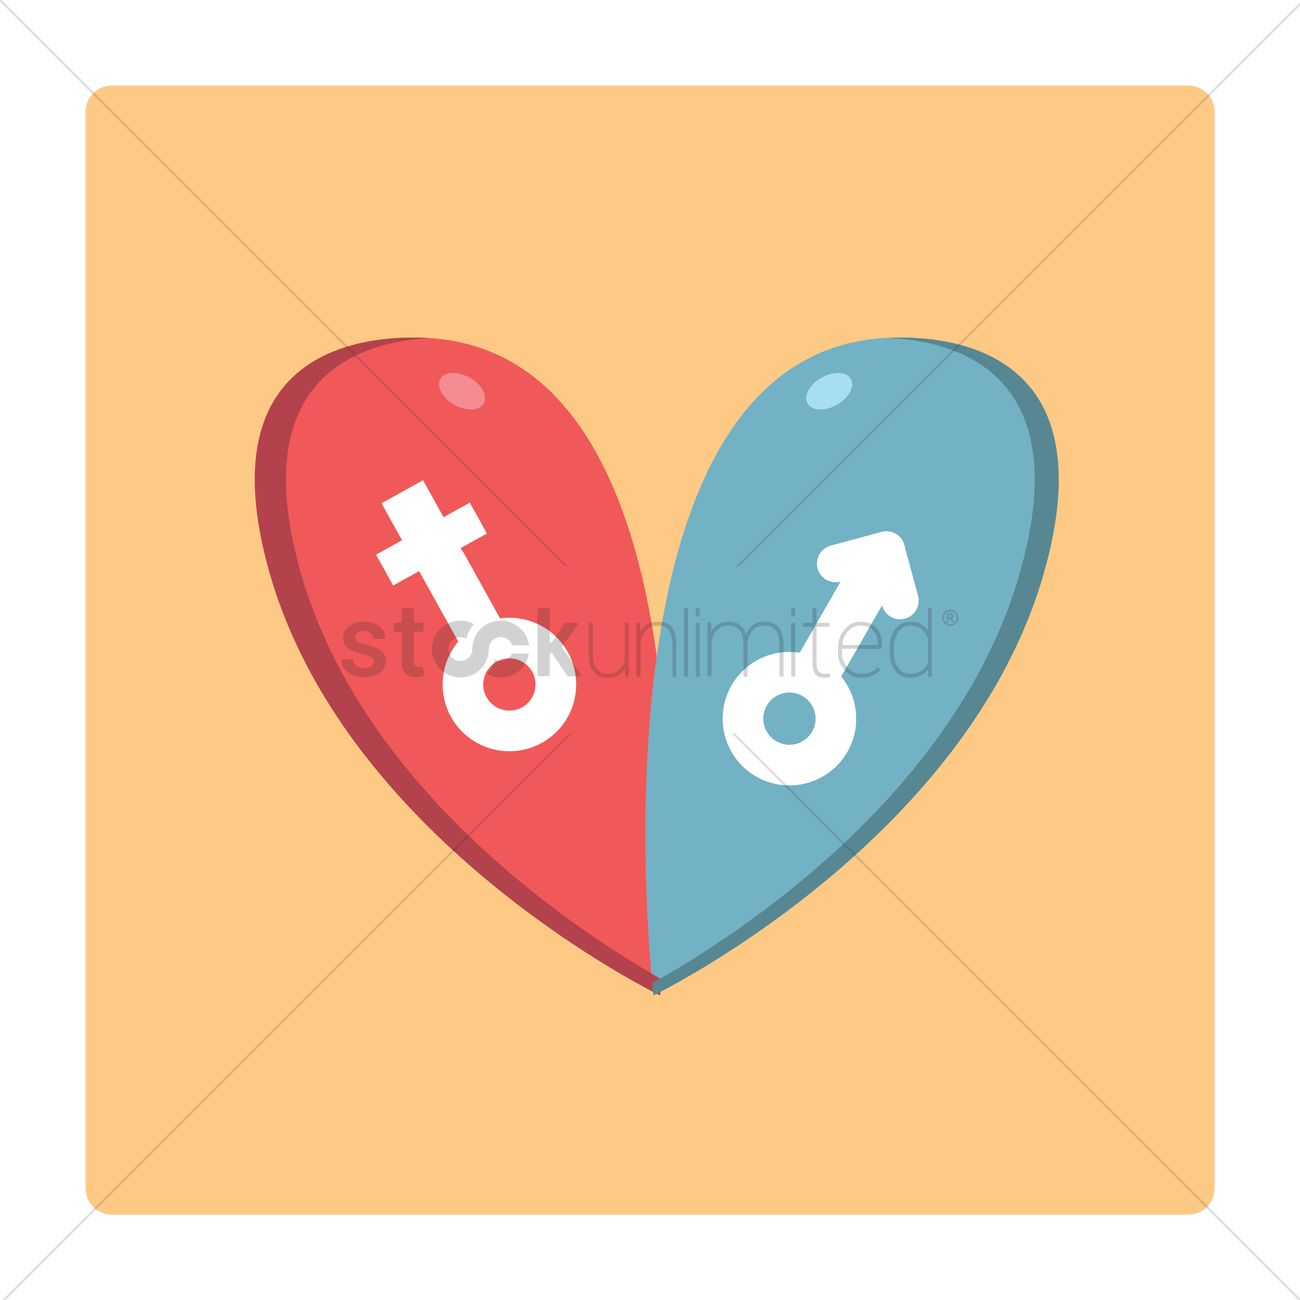 Gender Symbols In A Heart Vector Image 1334073 Stockunlimited